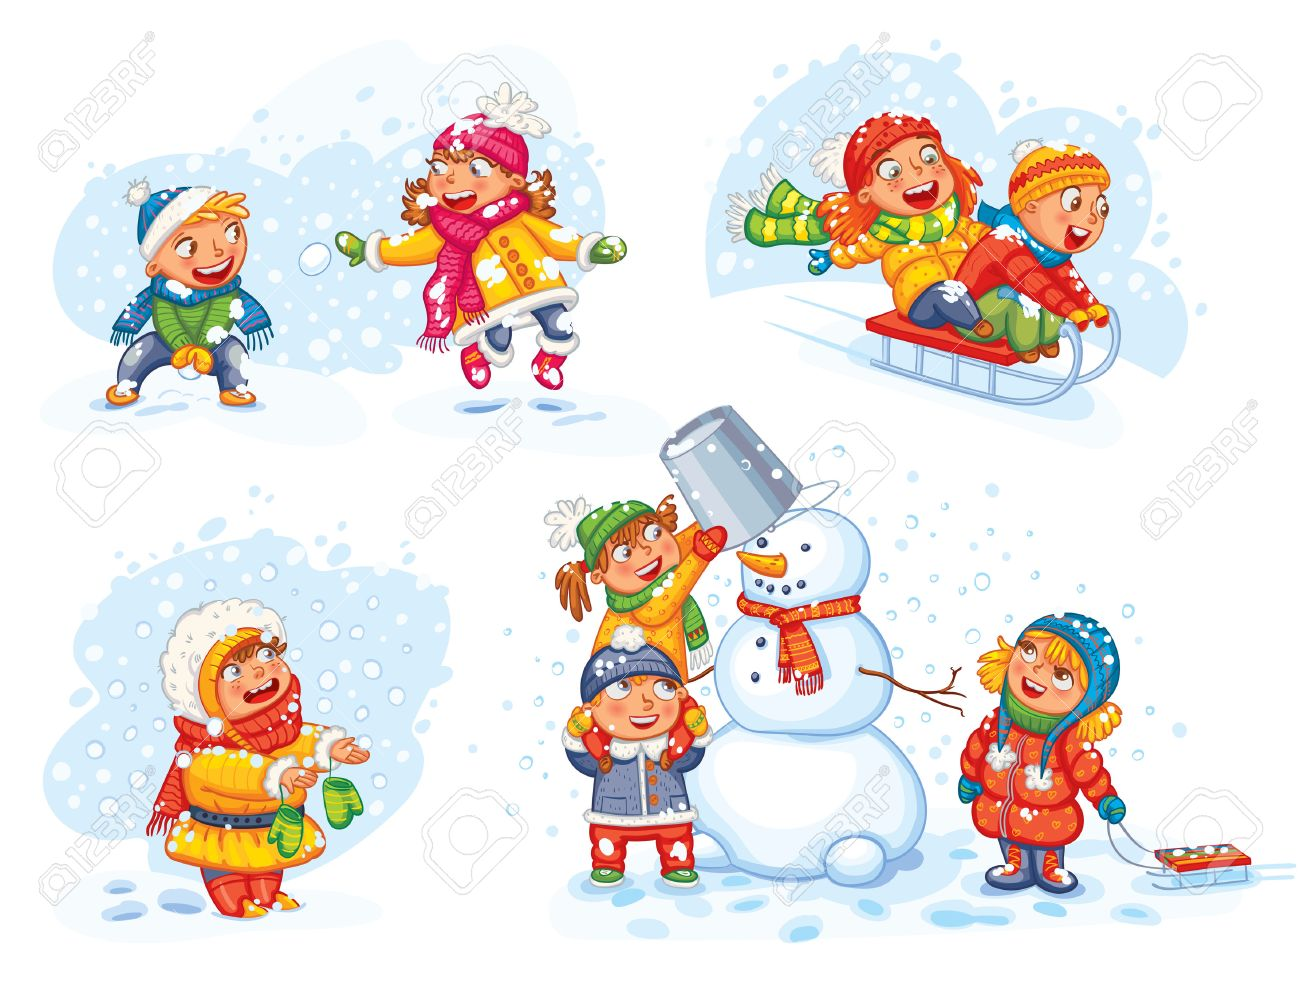 Playing outdoor. Children sledding. Boy and girl playing in snowballs. Schoolchildren making the snowman. Girl trying to catch snowflakes with her tongue. Funny cartoon character. Vector illustration. - 50123143